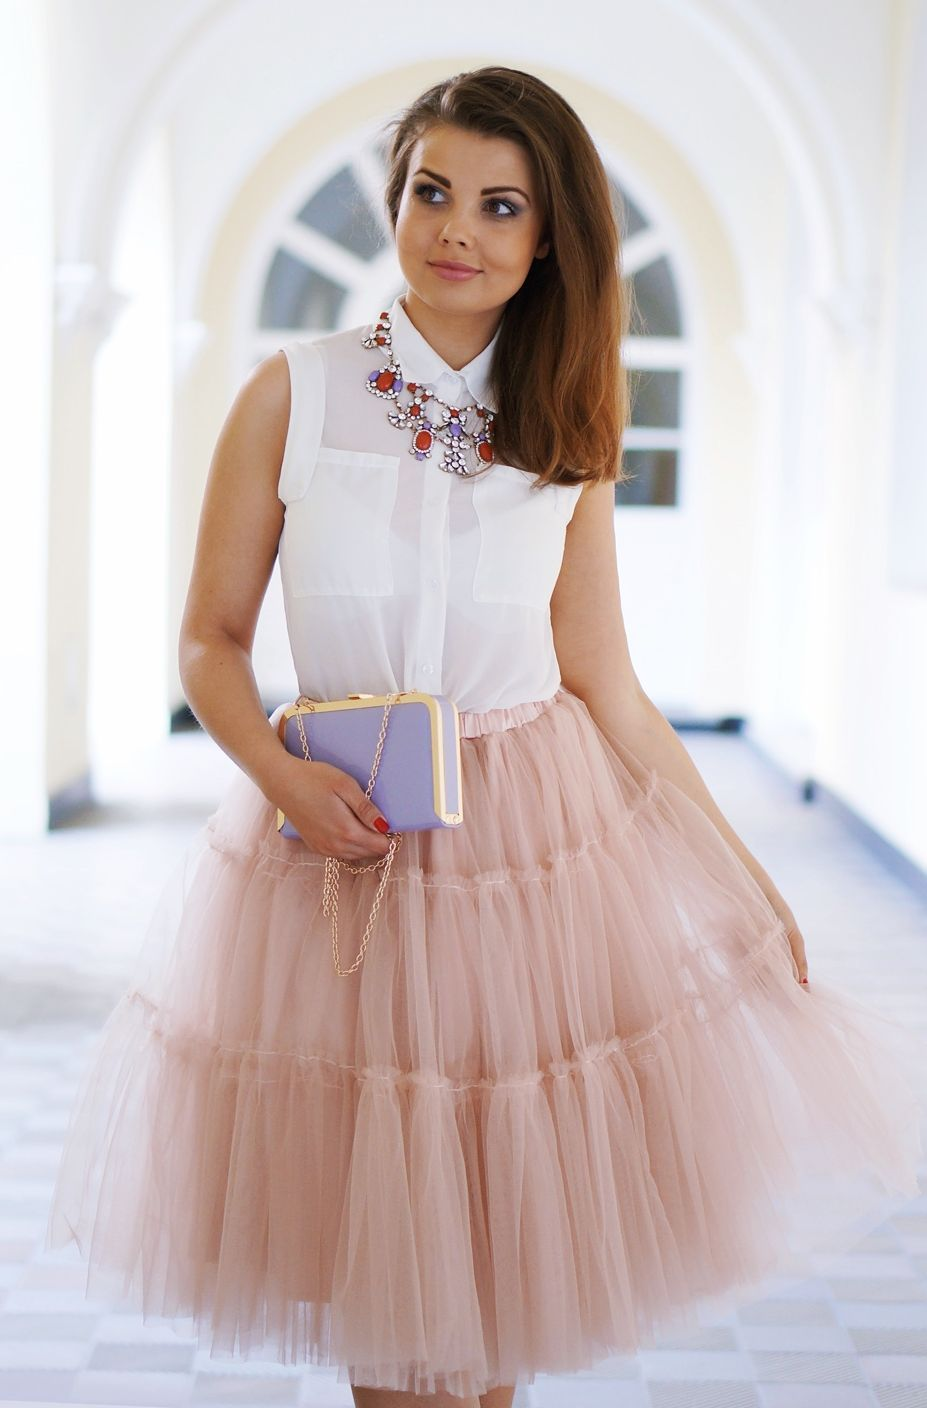 Blush Tulle Skirt Romantic Style by A piece Of Anna